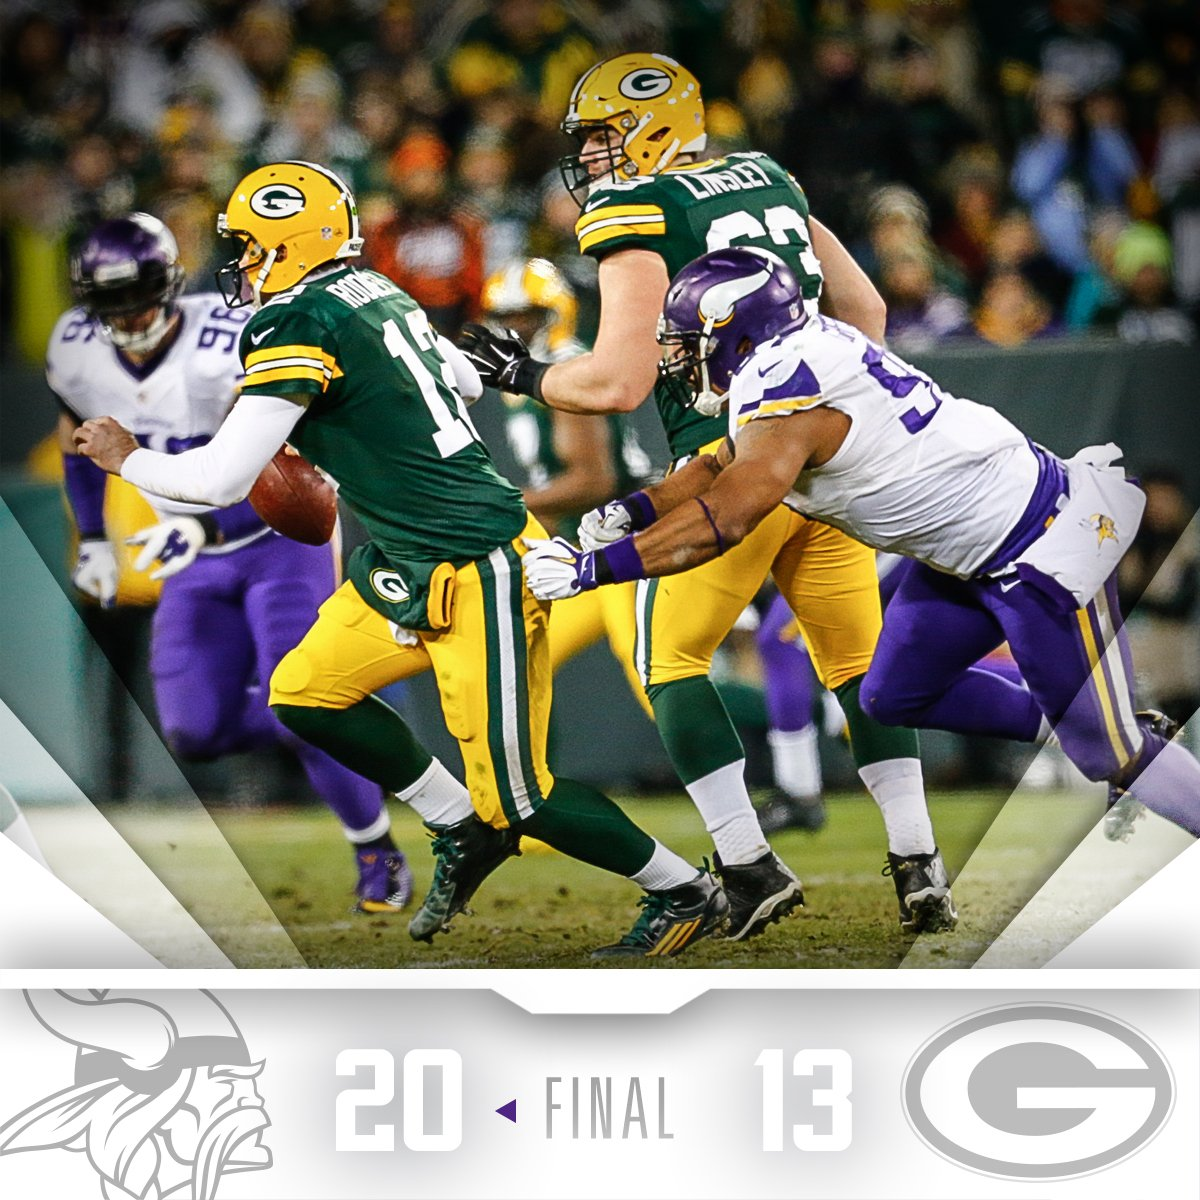 11-5 and NFC North champs! https://t.co/uC0oiBFjqZ